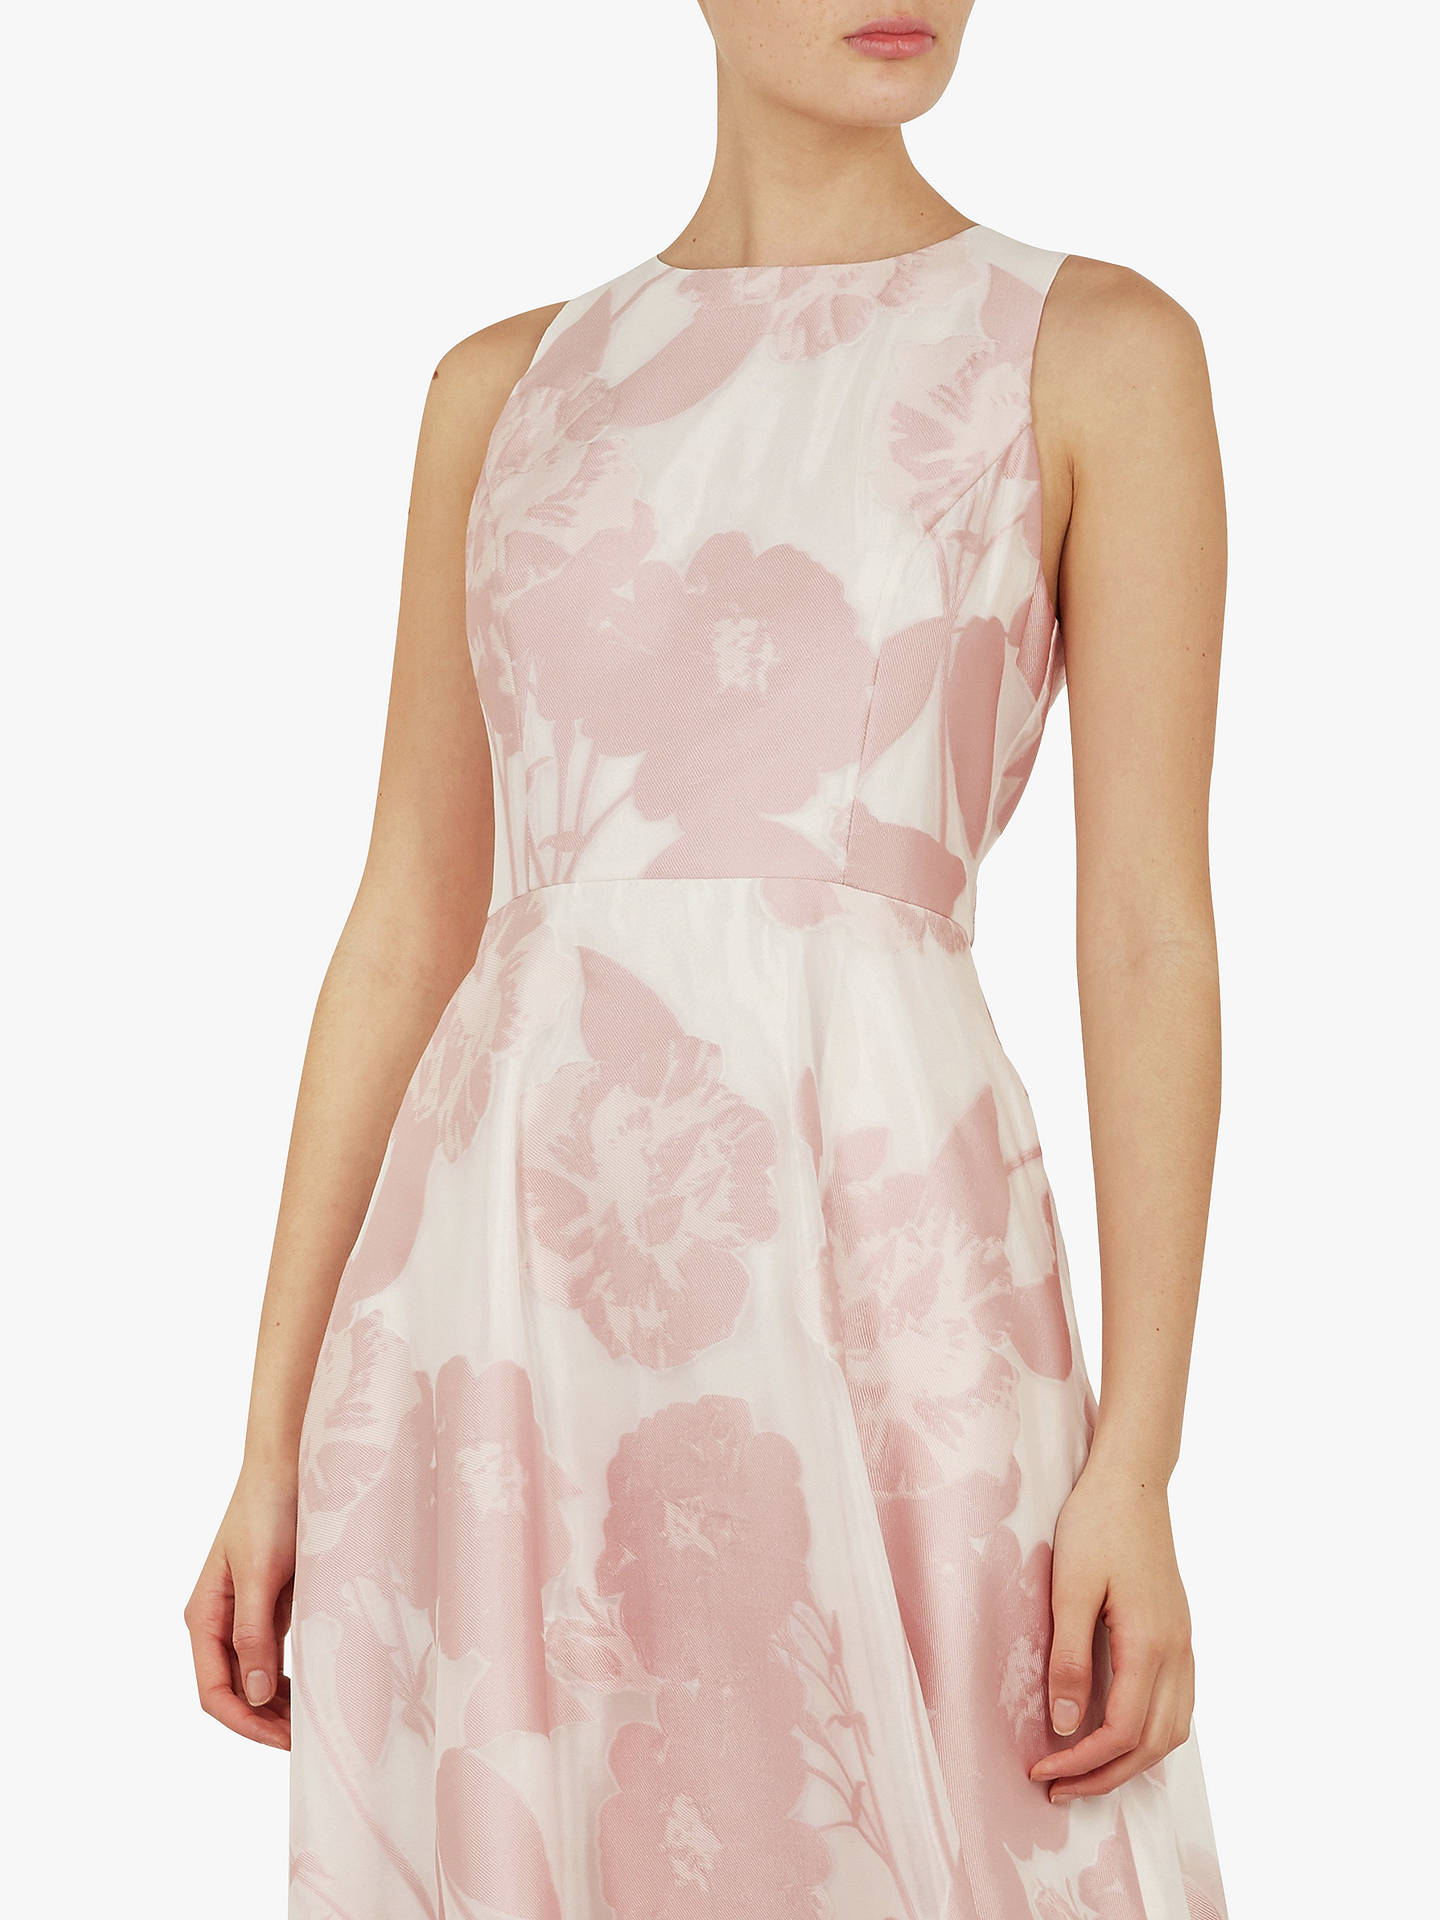 97d1d51ff671 ... Buy Ted Baker Wylieh Floral Jacquard Midi Dress, Light Pink, L Online  at johnlewis